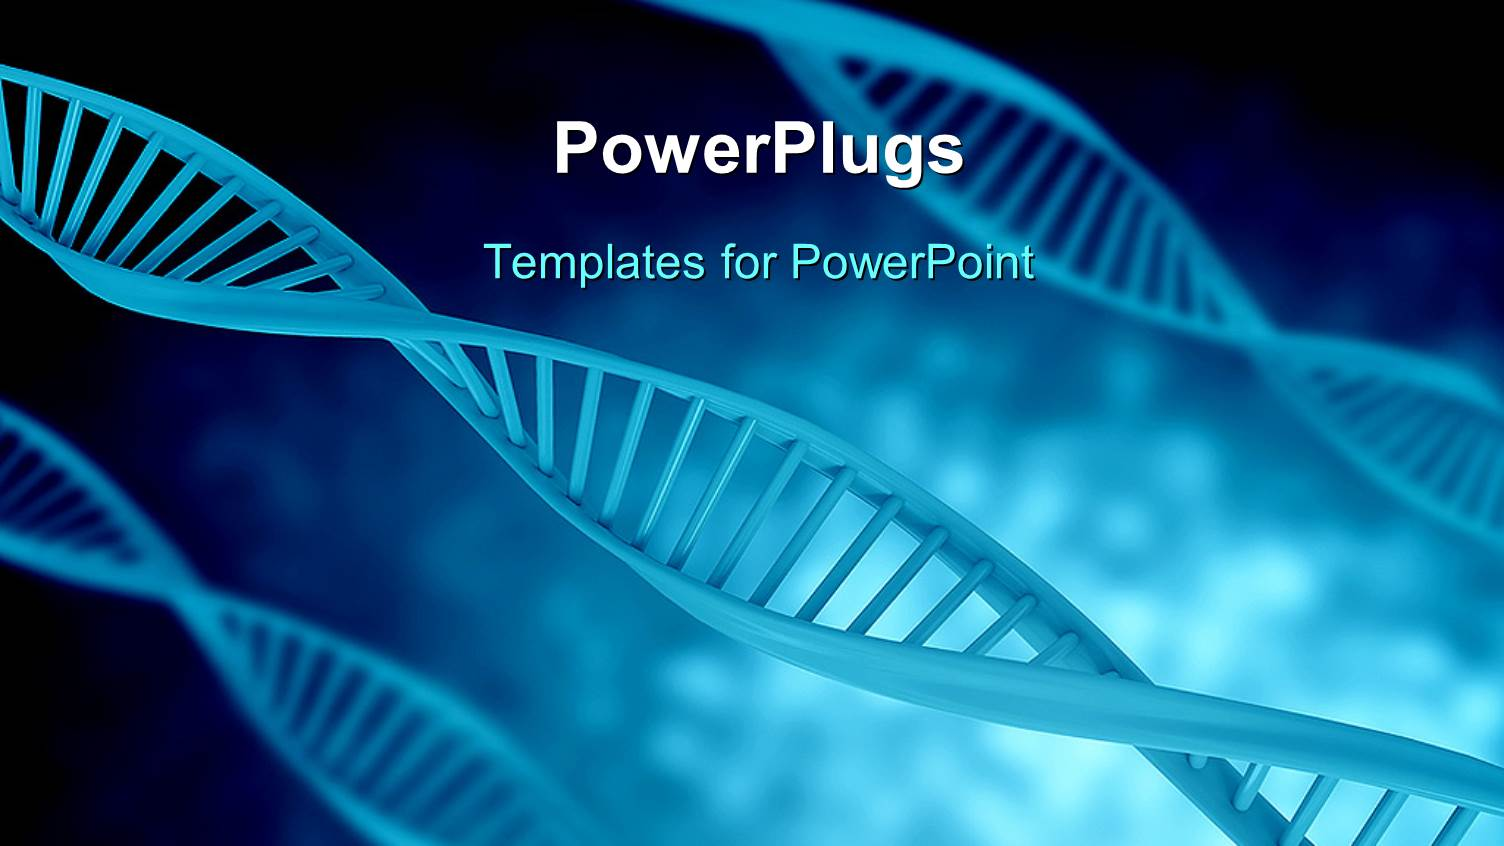 Dna powerpoint templates free download choice image templates dna powerpoint templates gallery templates example free download dna powerpoint templates free download gallery templates example toneelgroepblik Images